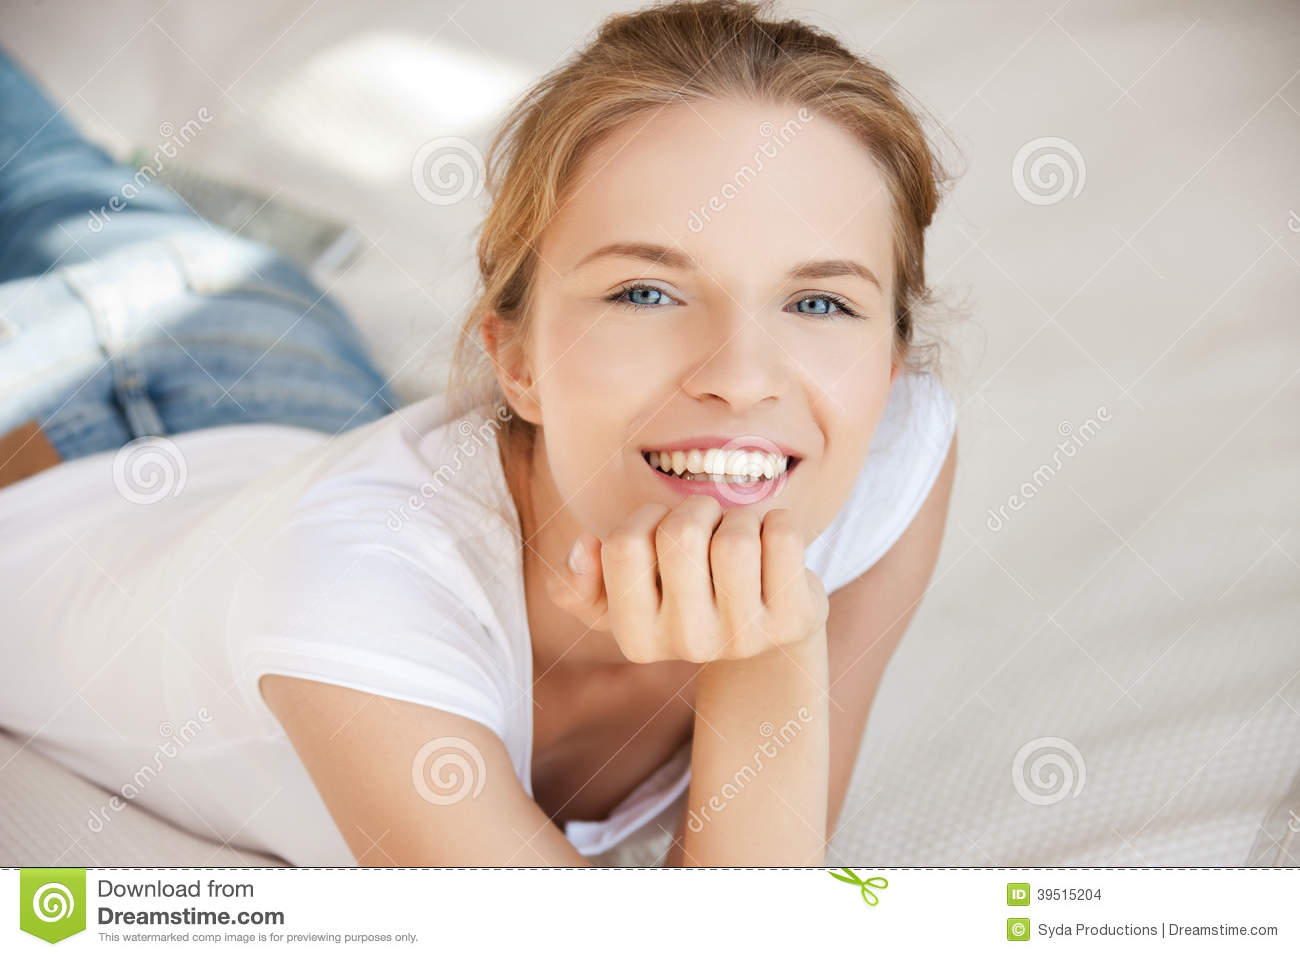 Smiling teenage girl on a bed